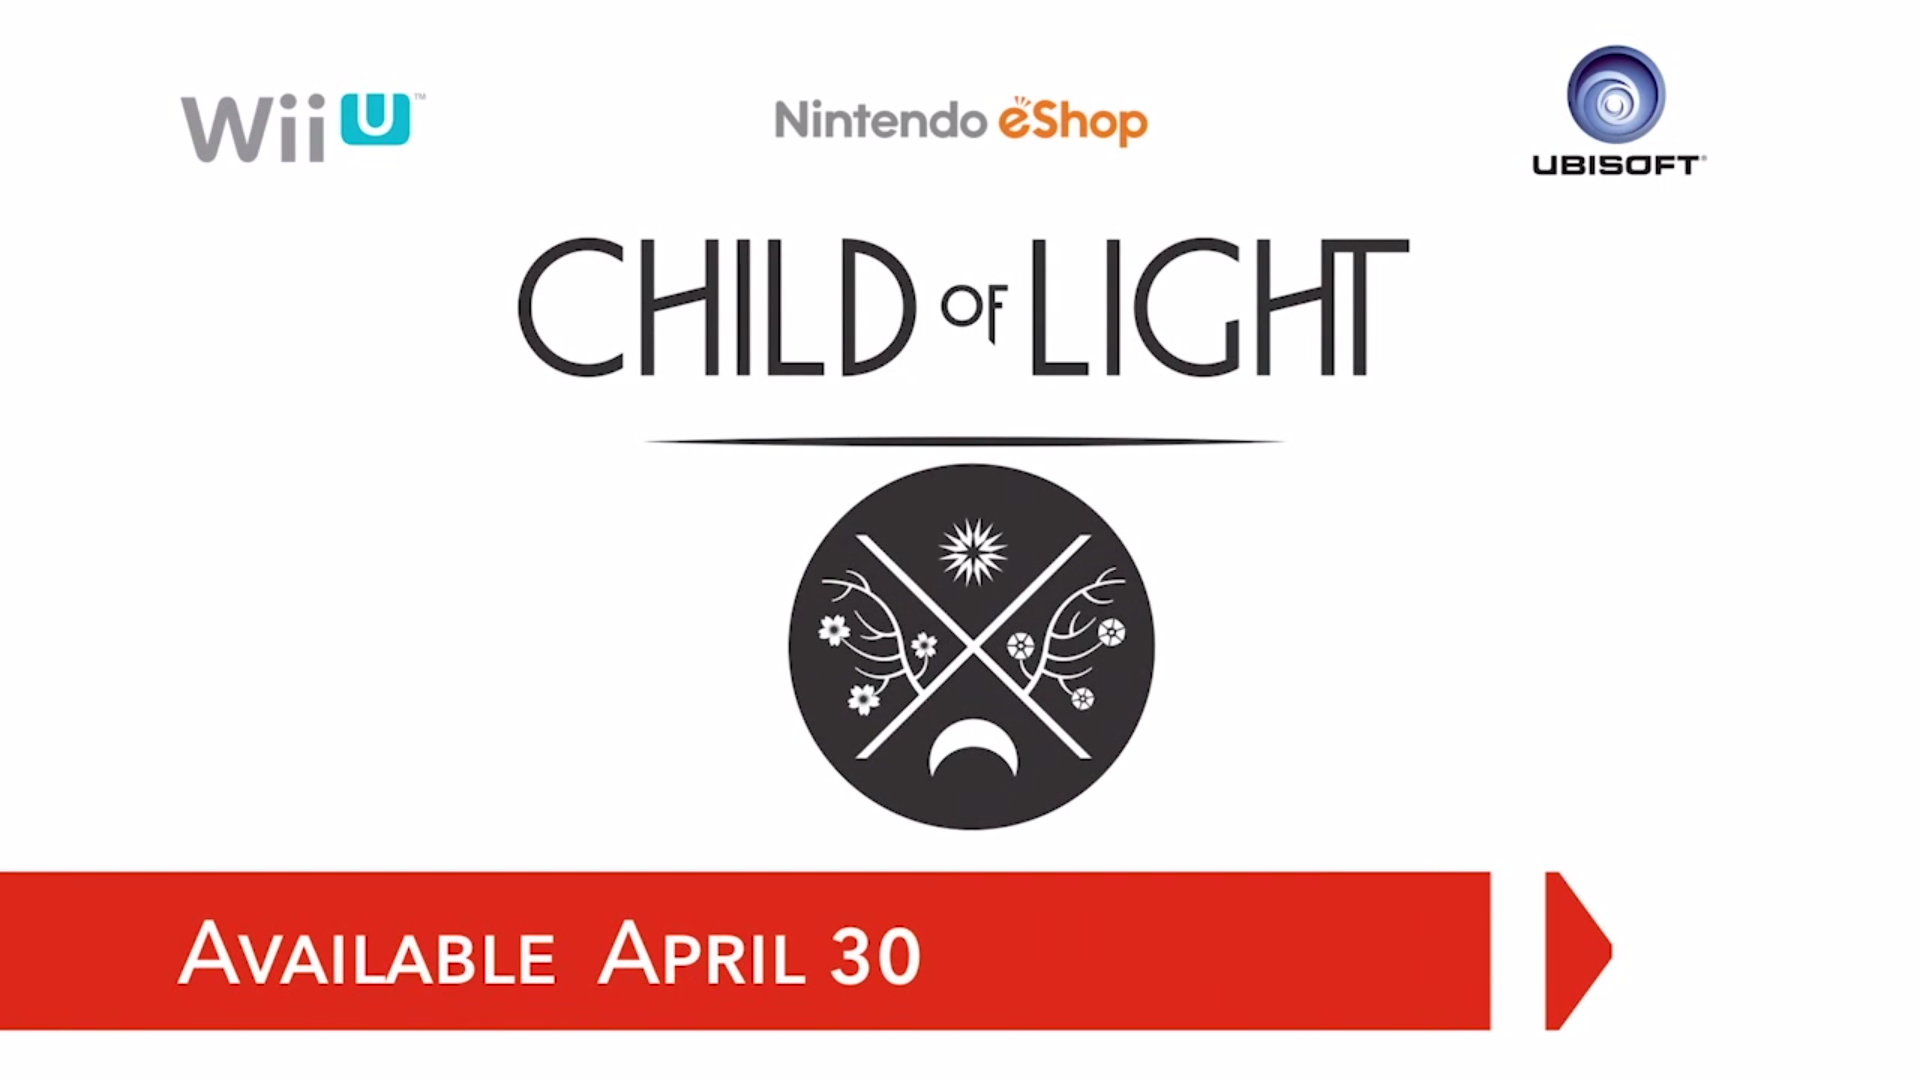 Child of Light Releases For Wii U On April 30